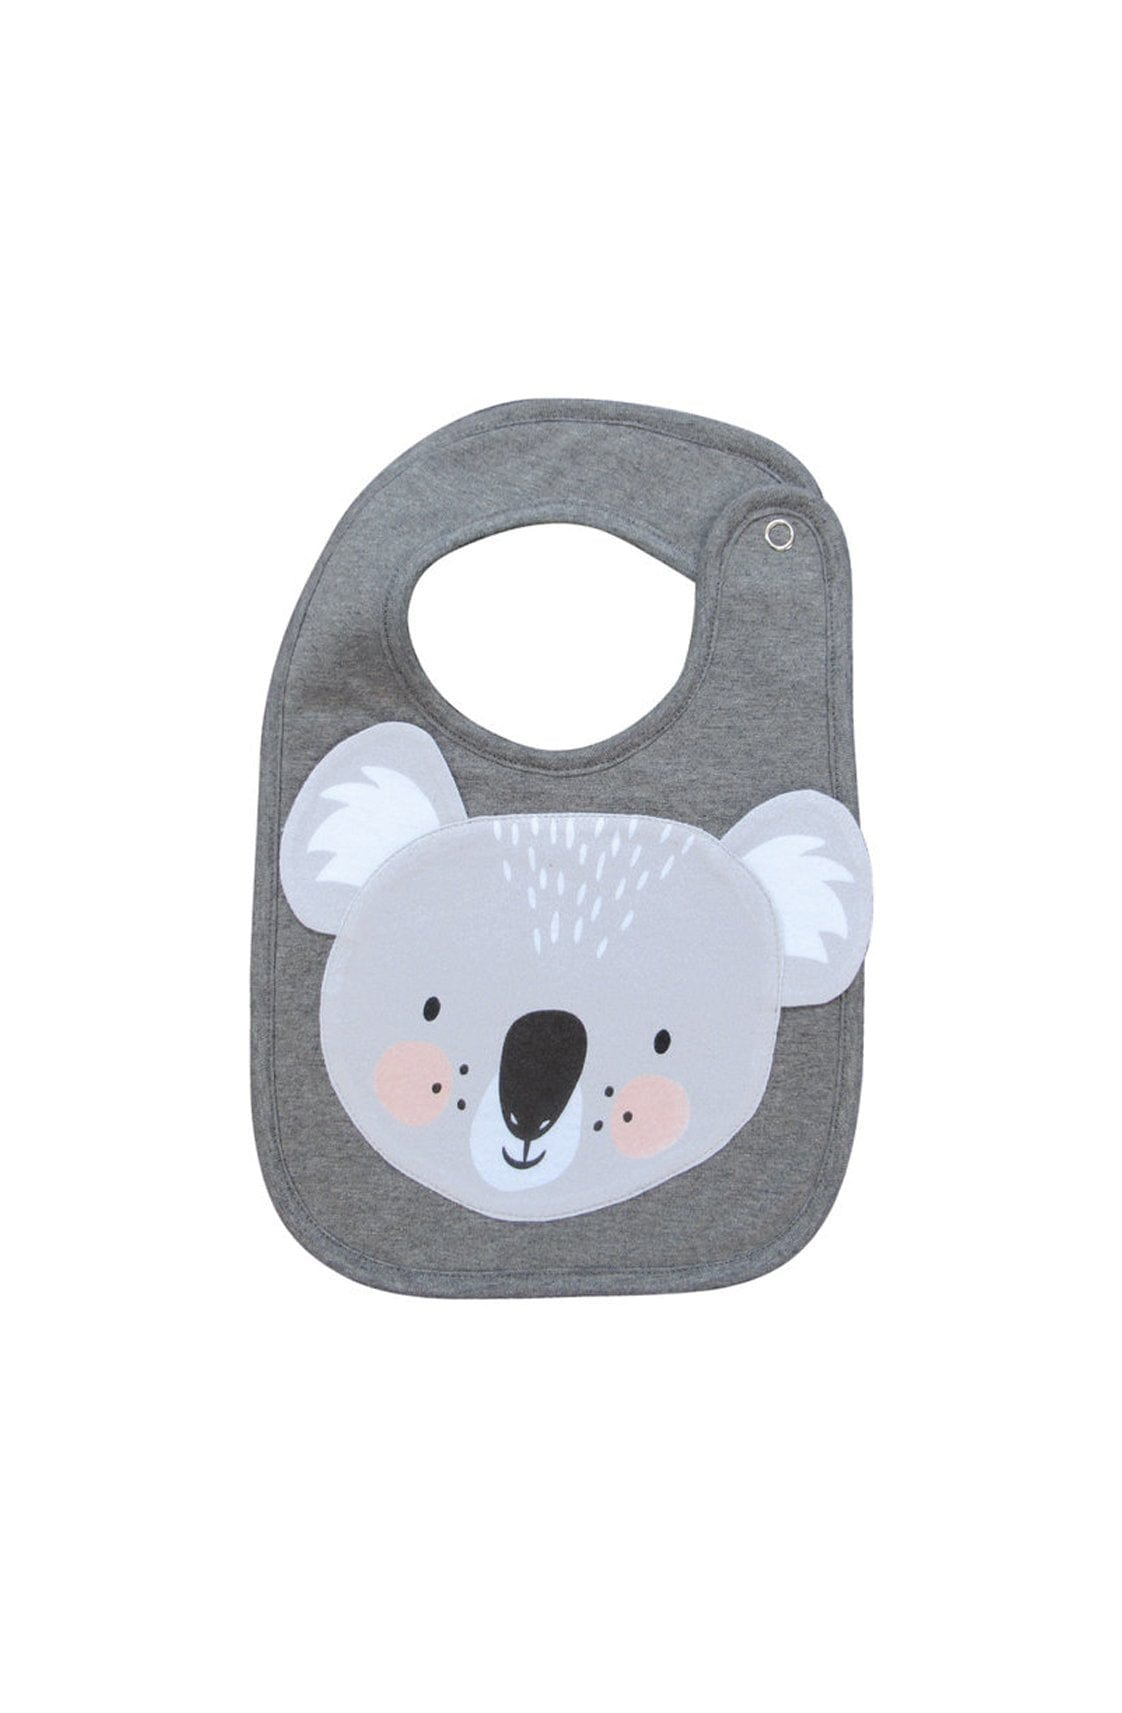 Mister Fly Koala Face Bib - Hello Little Birdie